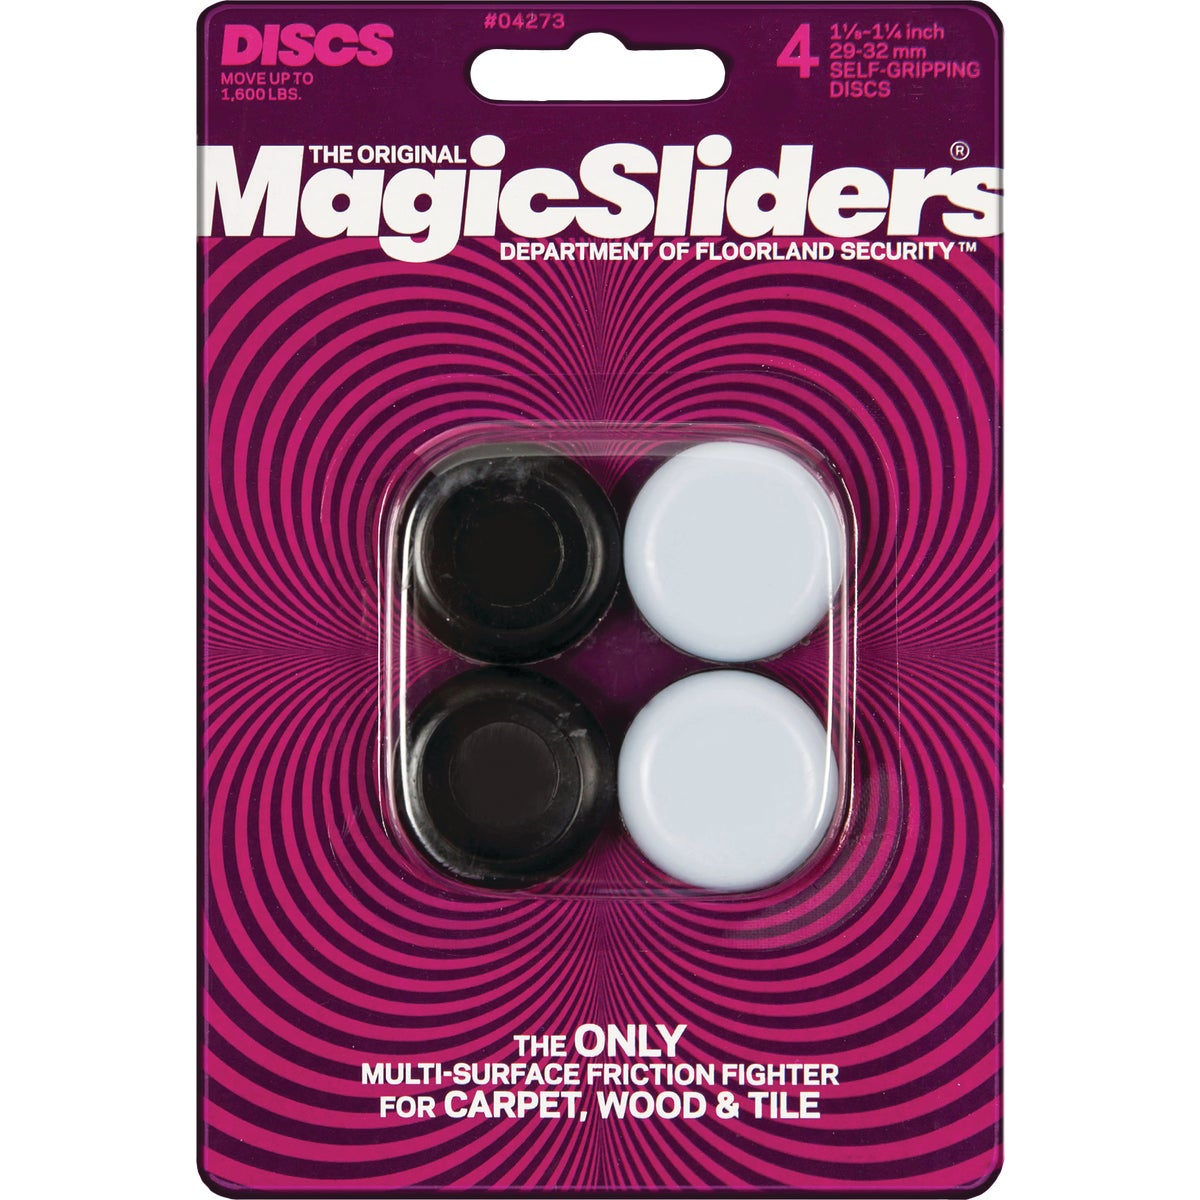 1-1/8TO1-1/4 RND SLIDER - 04273 by Magic Sliders